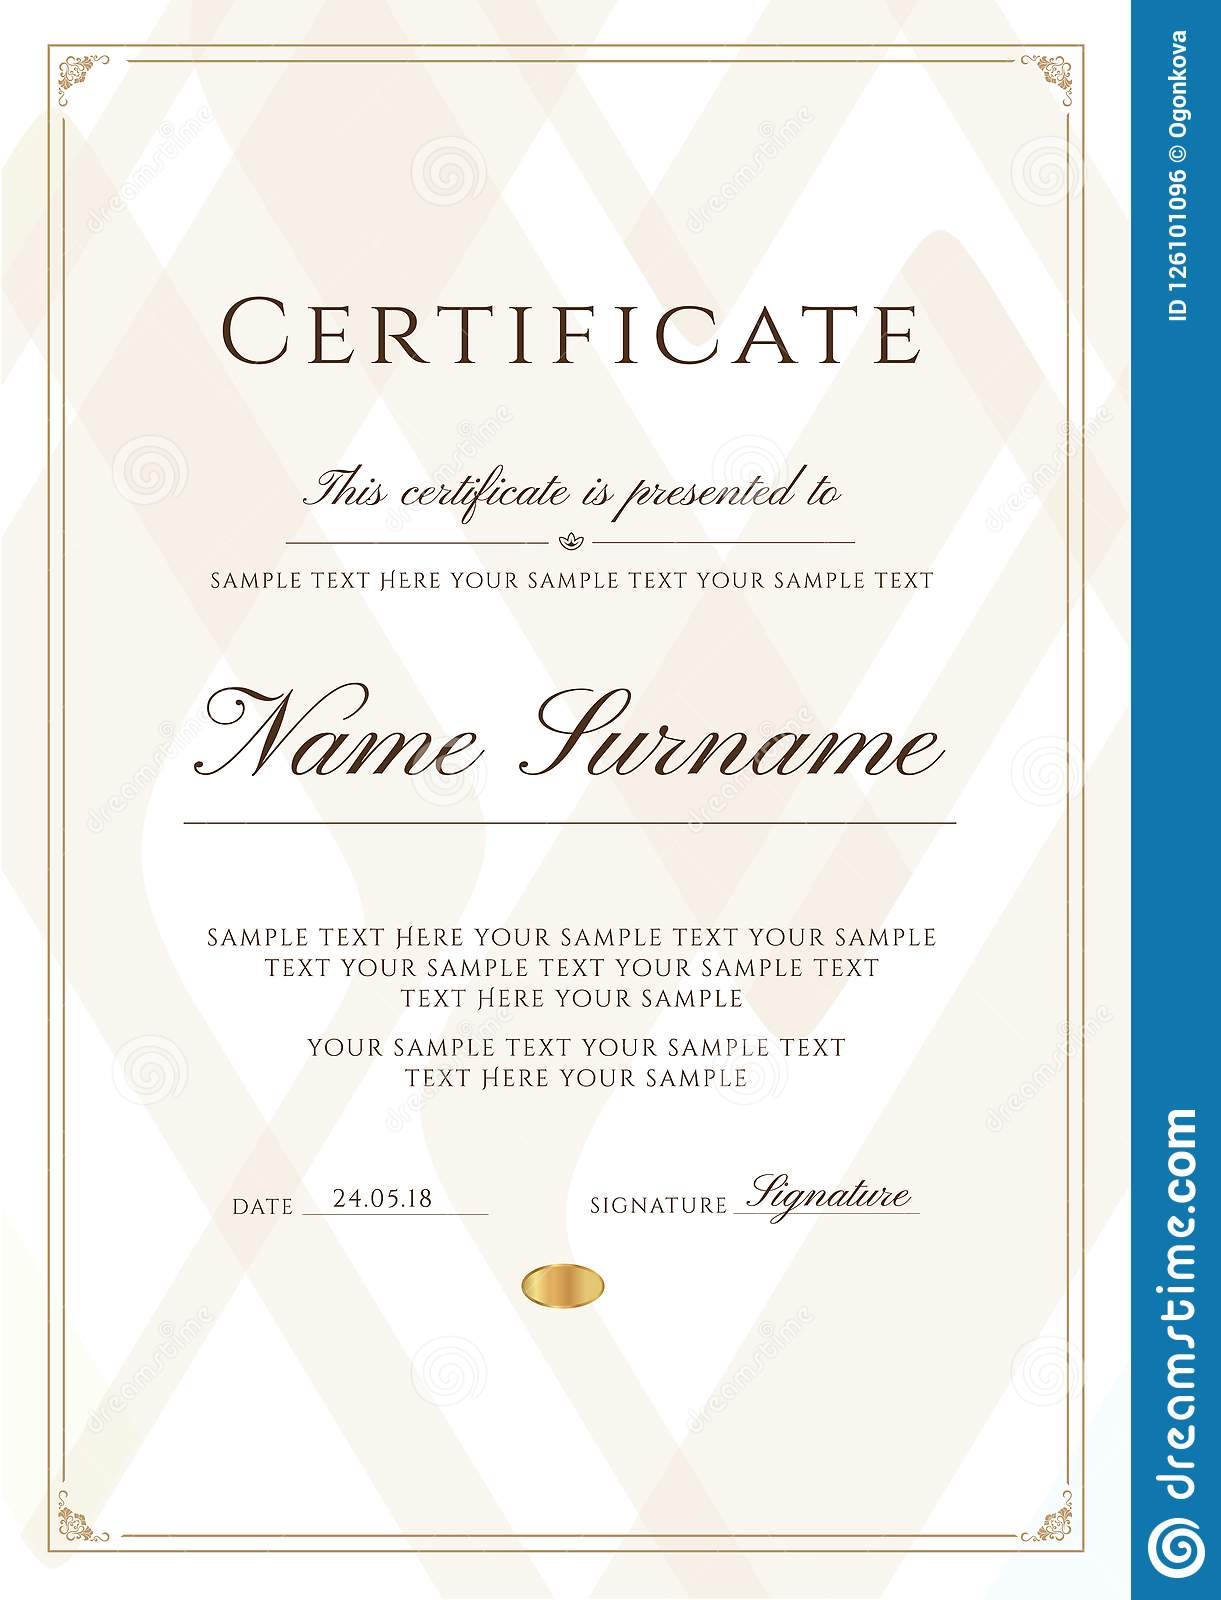 Certificate template with frame border and pattern design for download certificate template with frame border and pattern design for diploma certificate of achievement maxwellsz